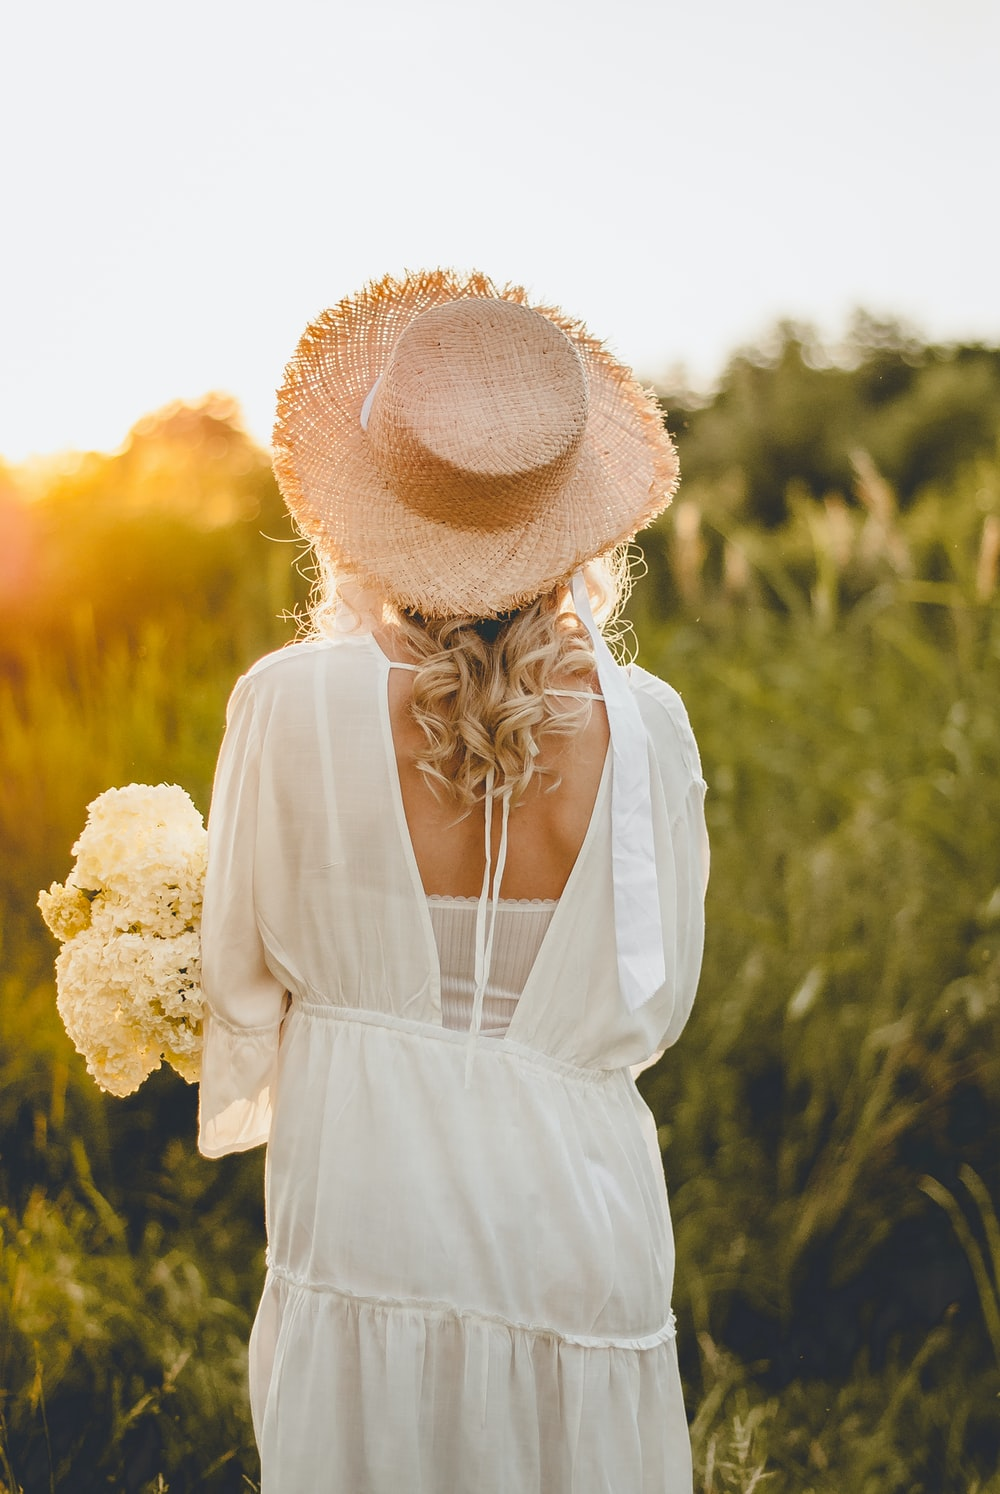 woman in white dress wearing brown sun hat standing on yellow flower field during daytime